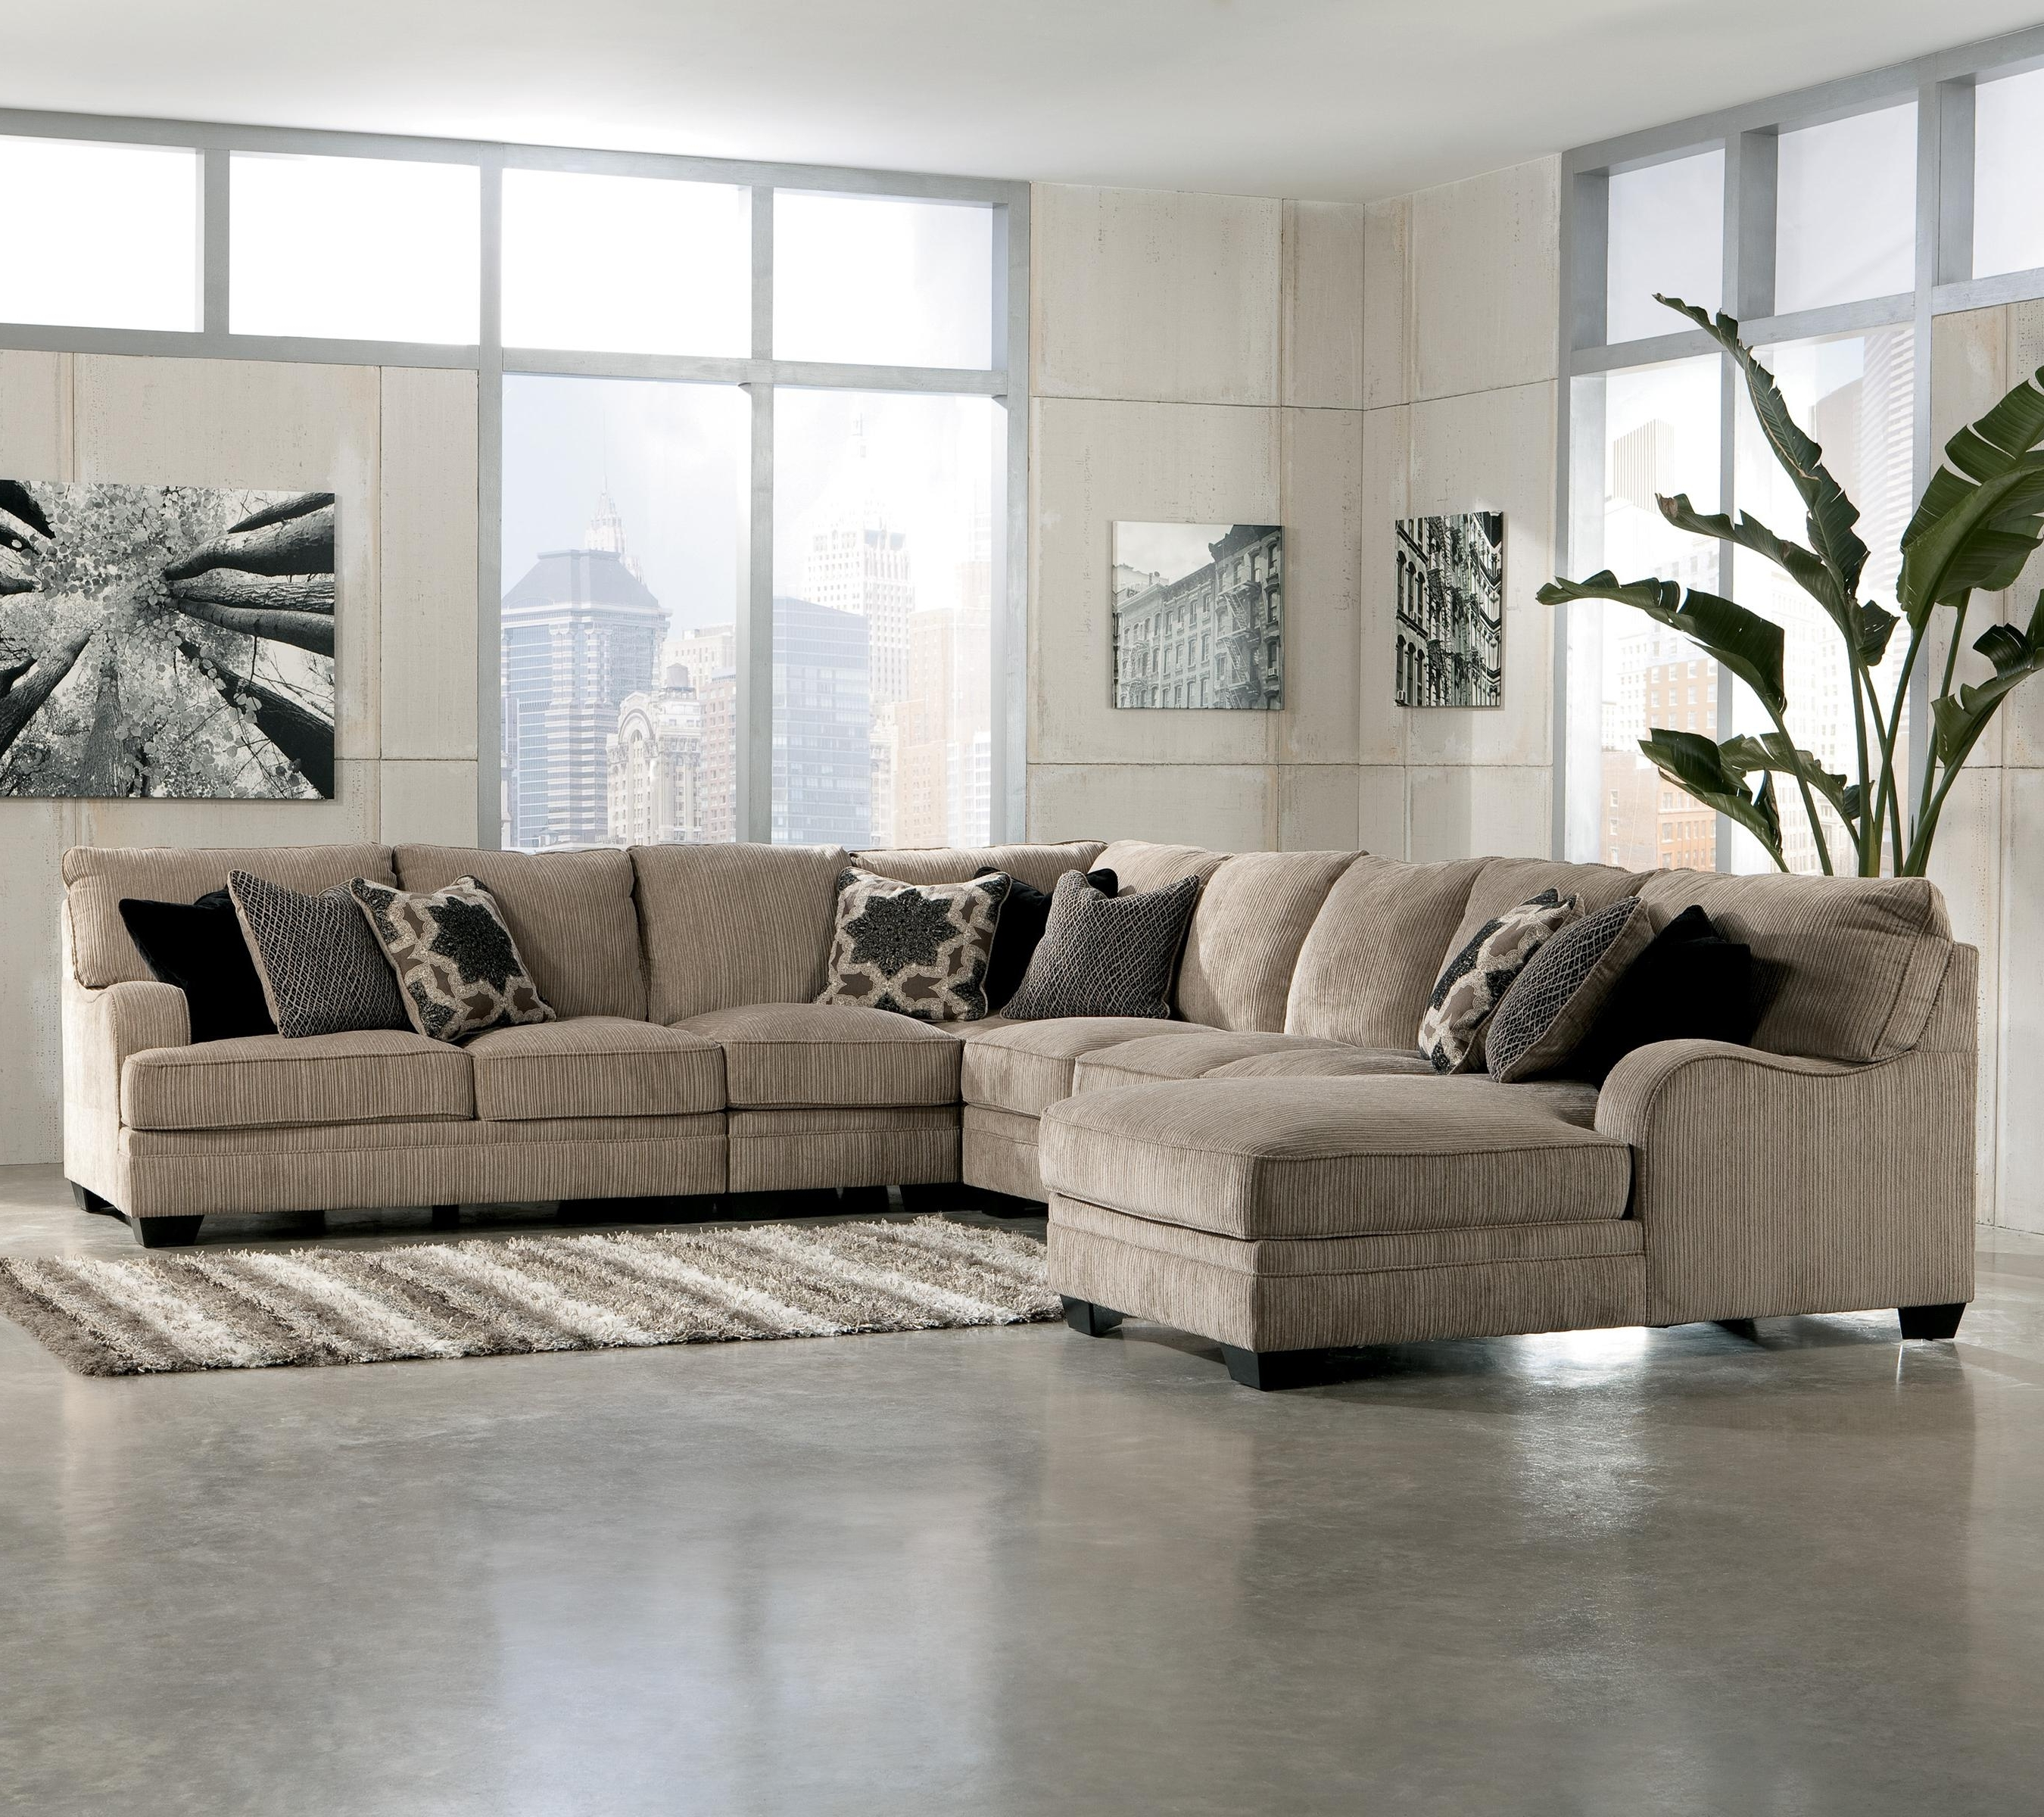 Widely Used Living Room Sectional: Katisha 4 Piece Sectionalashley Intended For Sectional Sofas At Ashley (View 20 of 20)